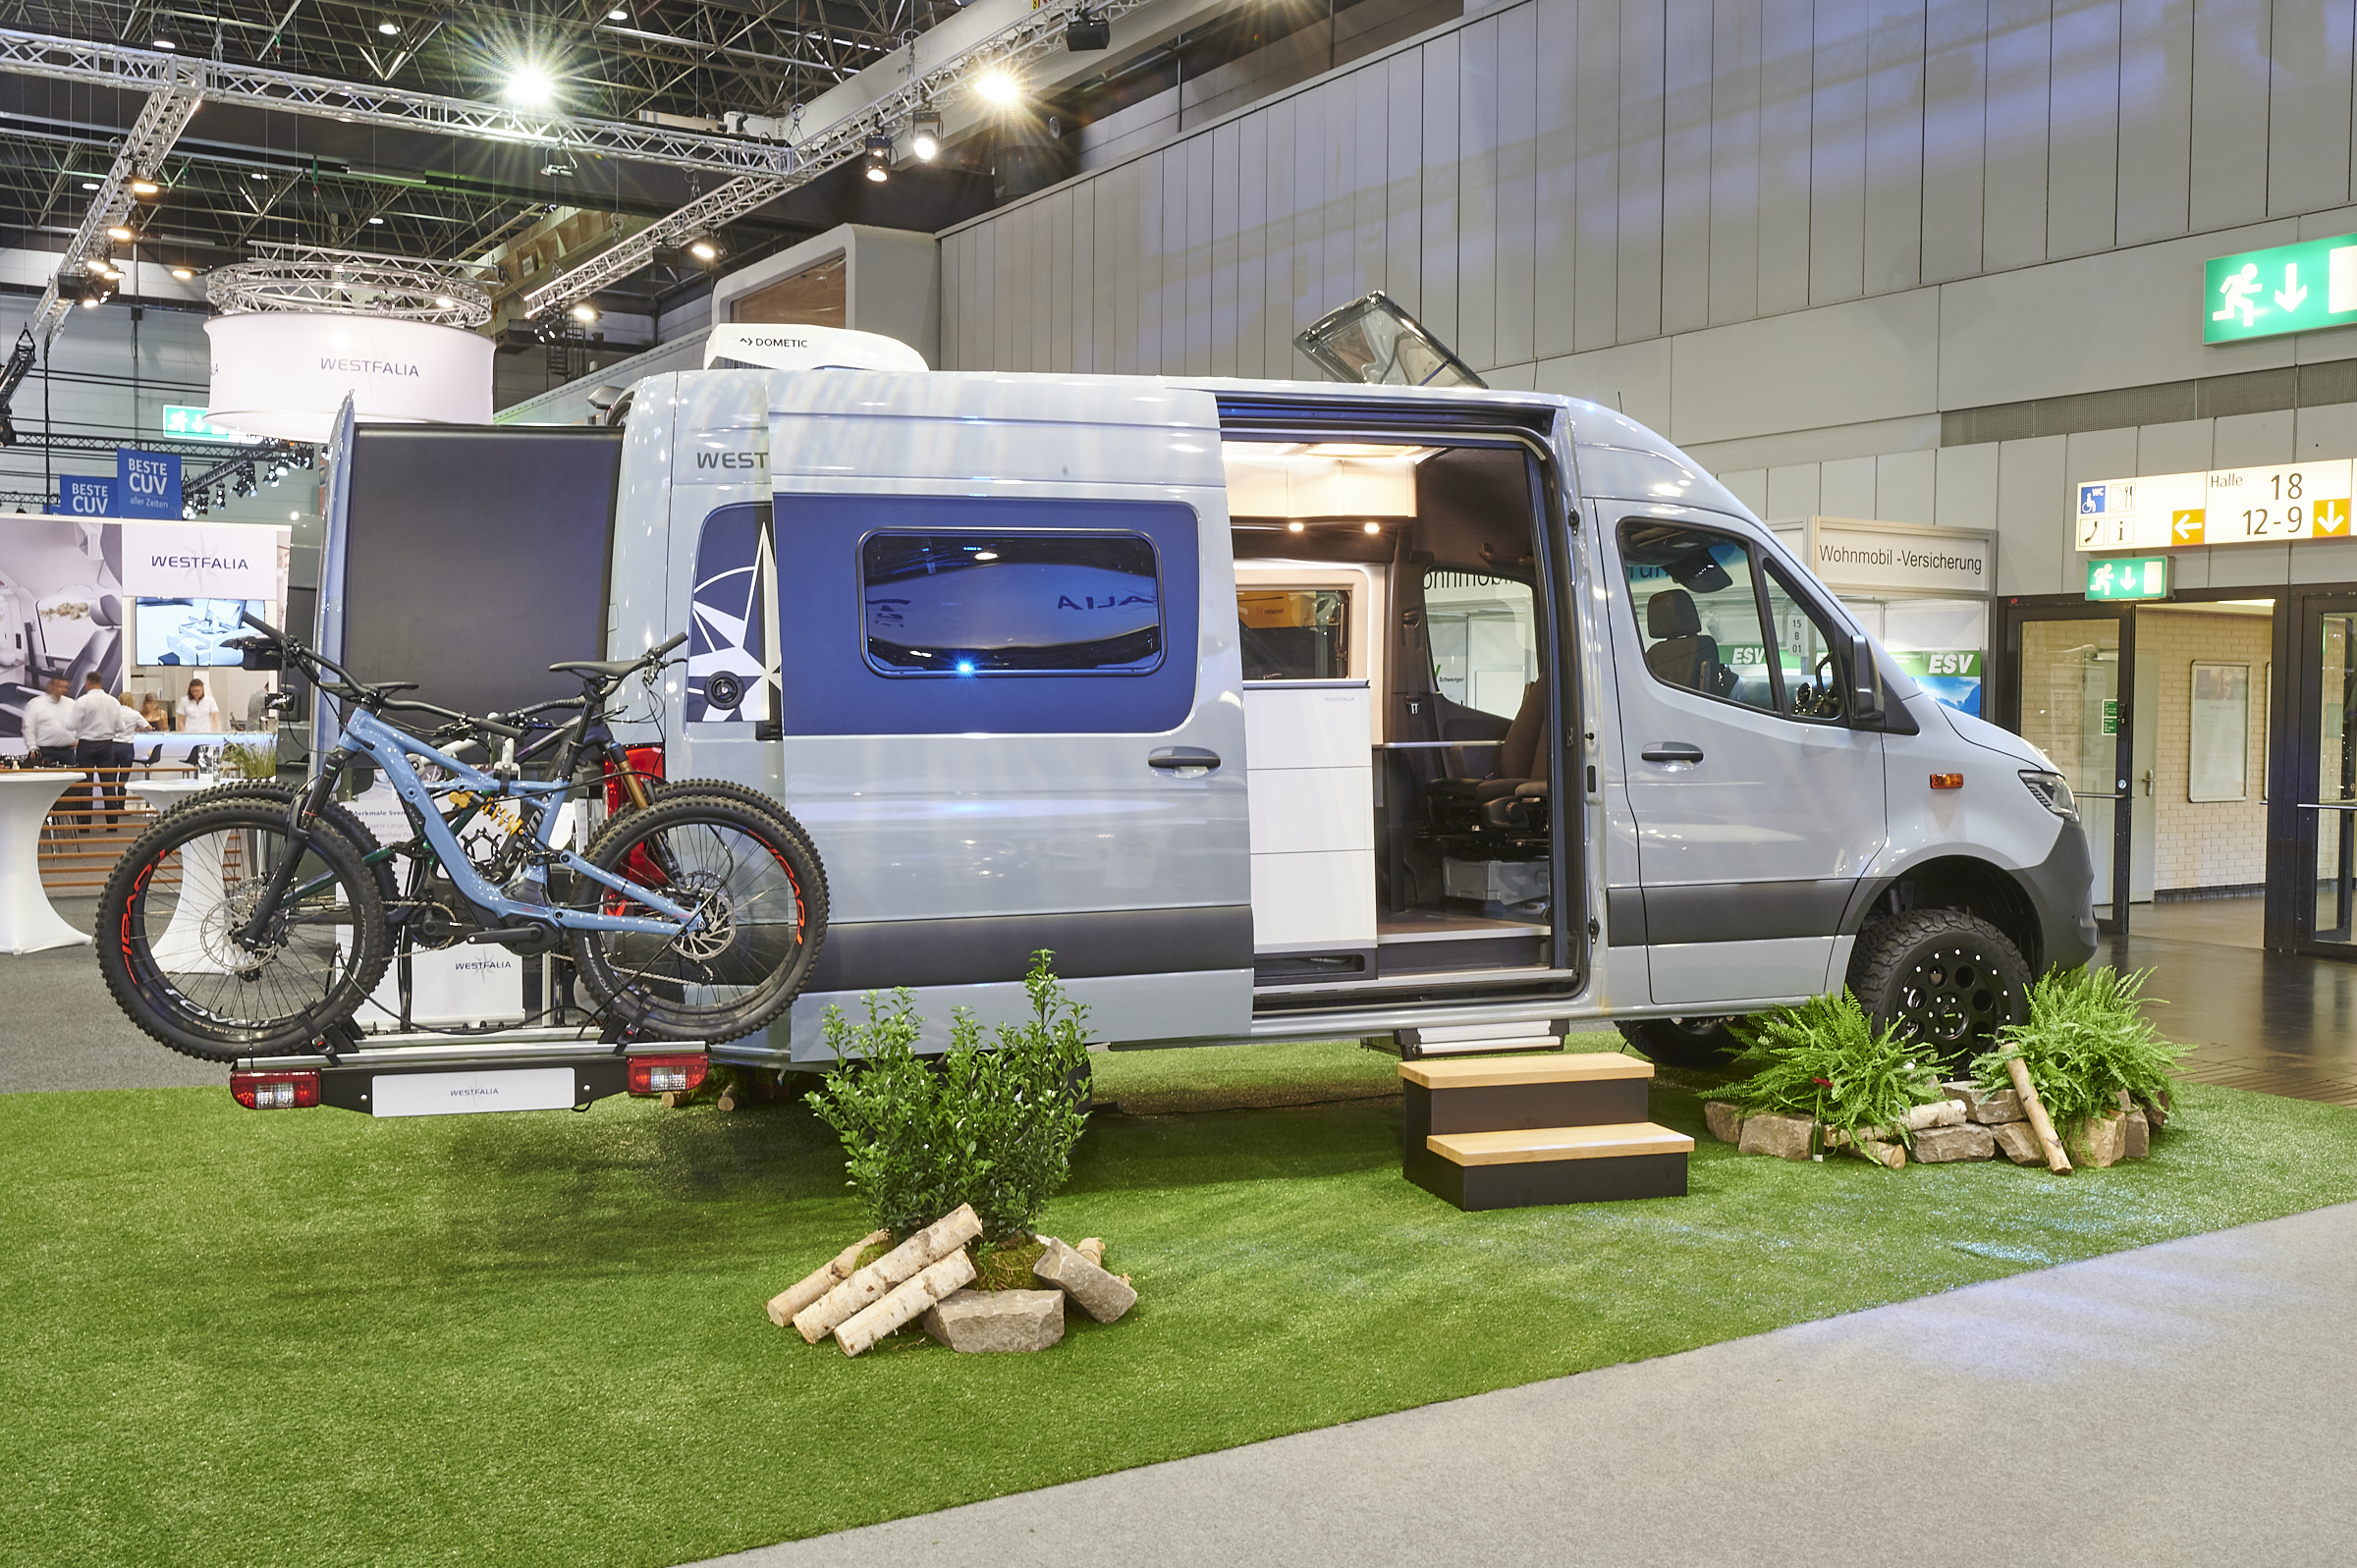 Westfalia's expanding camper van gets 4x4 and high roof